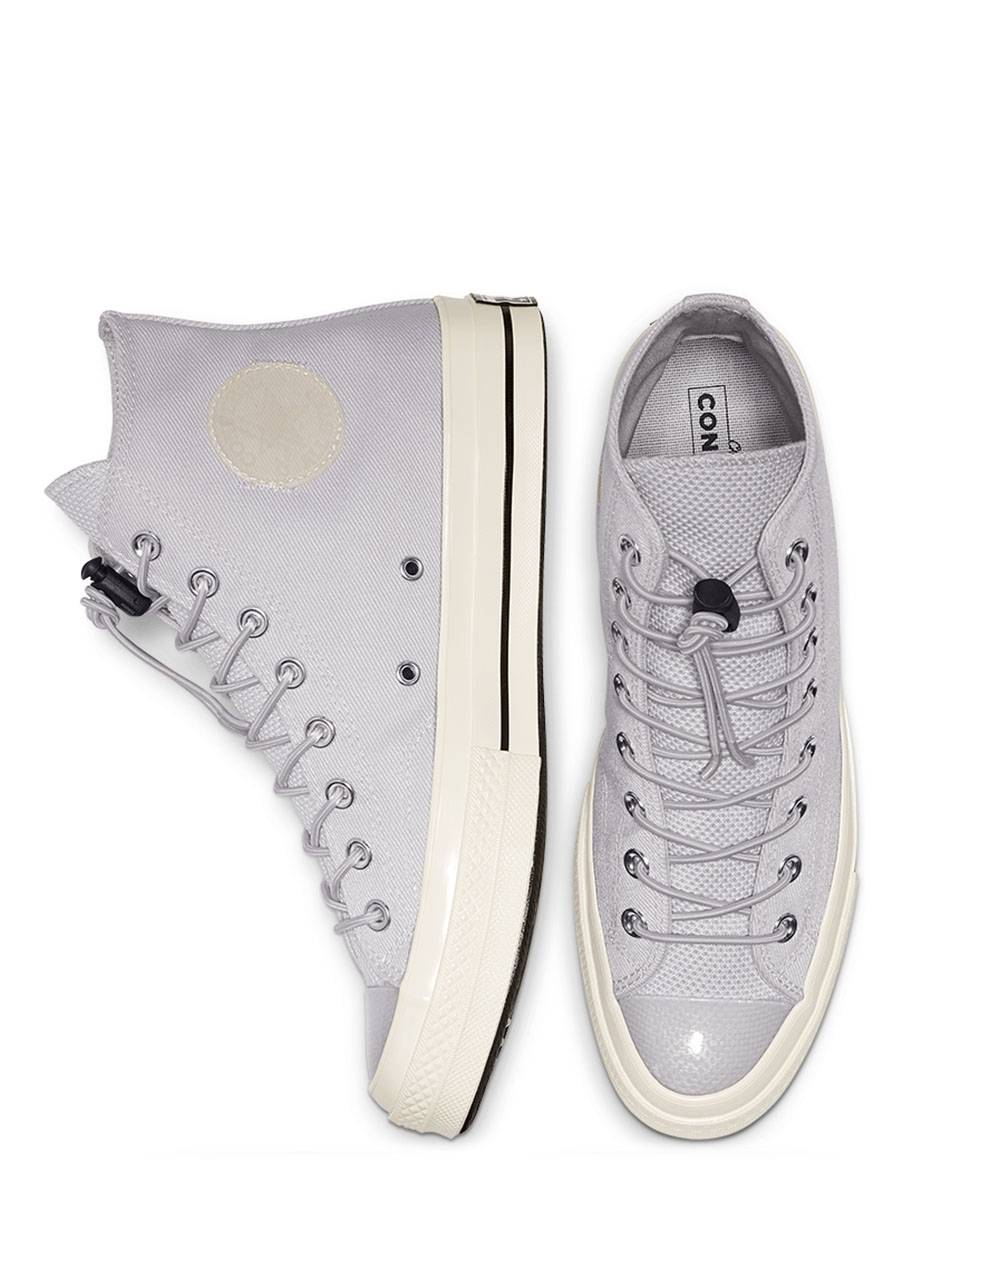 Converse Woman Chuck 70 Space Racer High Top - Pale putty/black/egret Converse Sneakers 89,34€ -30%